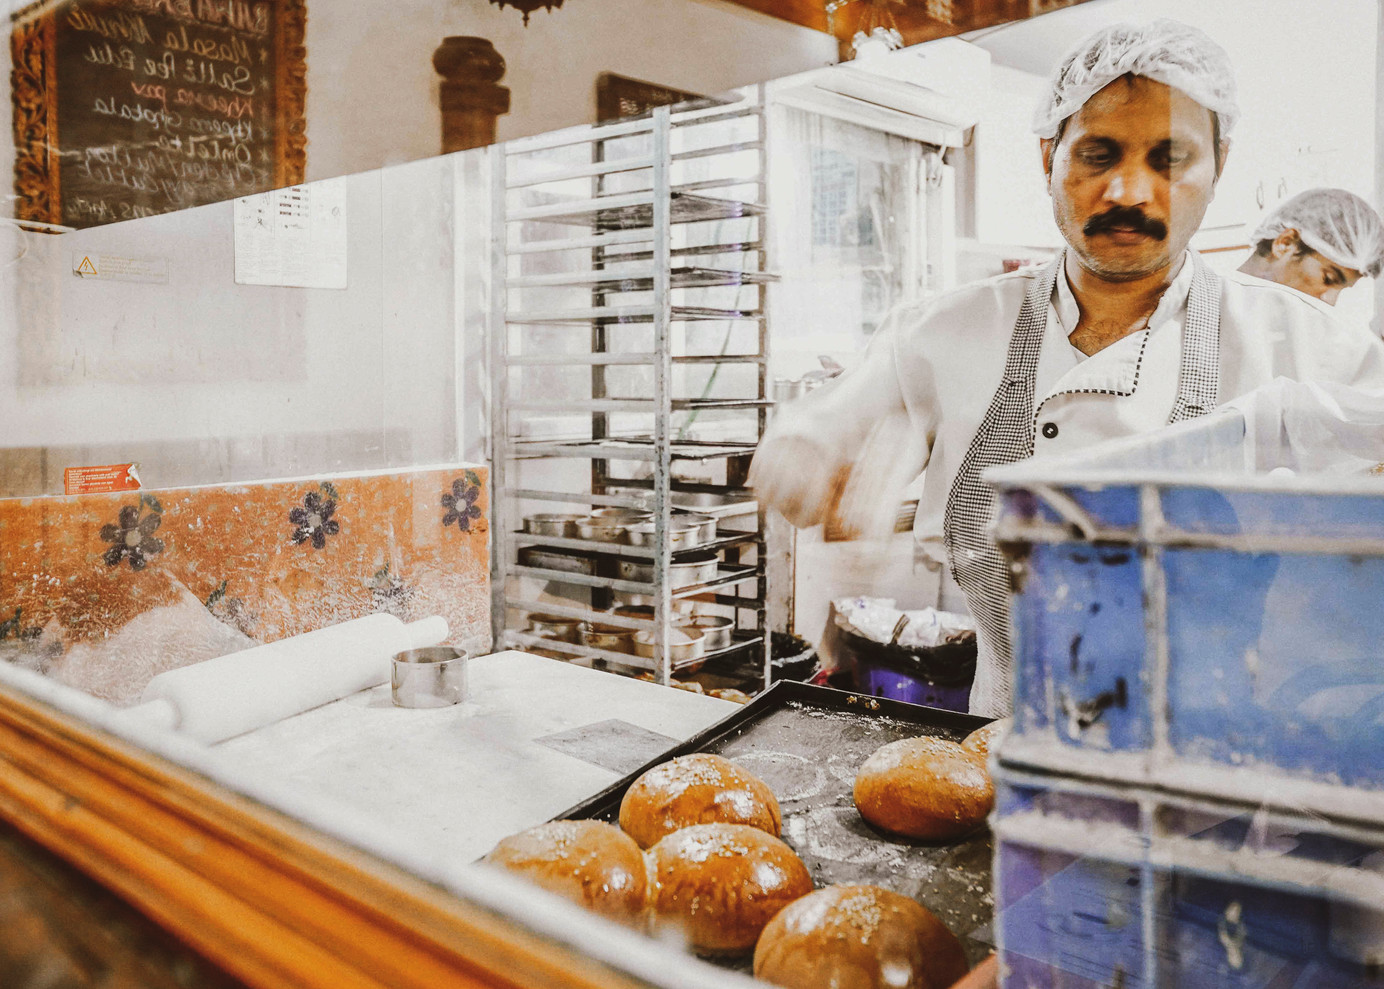 A baker preparing fresh bread at the bakery of Jimmy Boy situated near Horniman Circle. Jimmy Boy was established in the 1920's as Cafe India. The cafe was converted to a restaurant and renamed in 1999 after the current owner's great-grandfather Jamshed Irani, fondly known as Jimmy. Jimmy Boy is a cosy Irani cafe with a bakery and a takeaway counter serving the fast-paced corporate executives and lawyers at Fort.